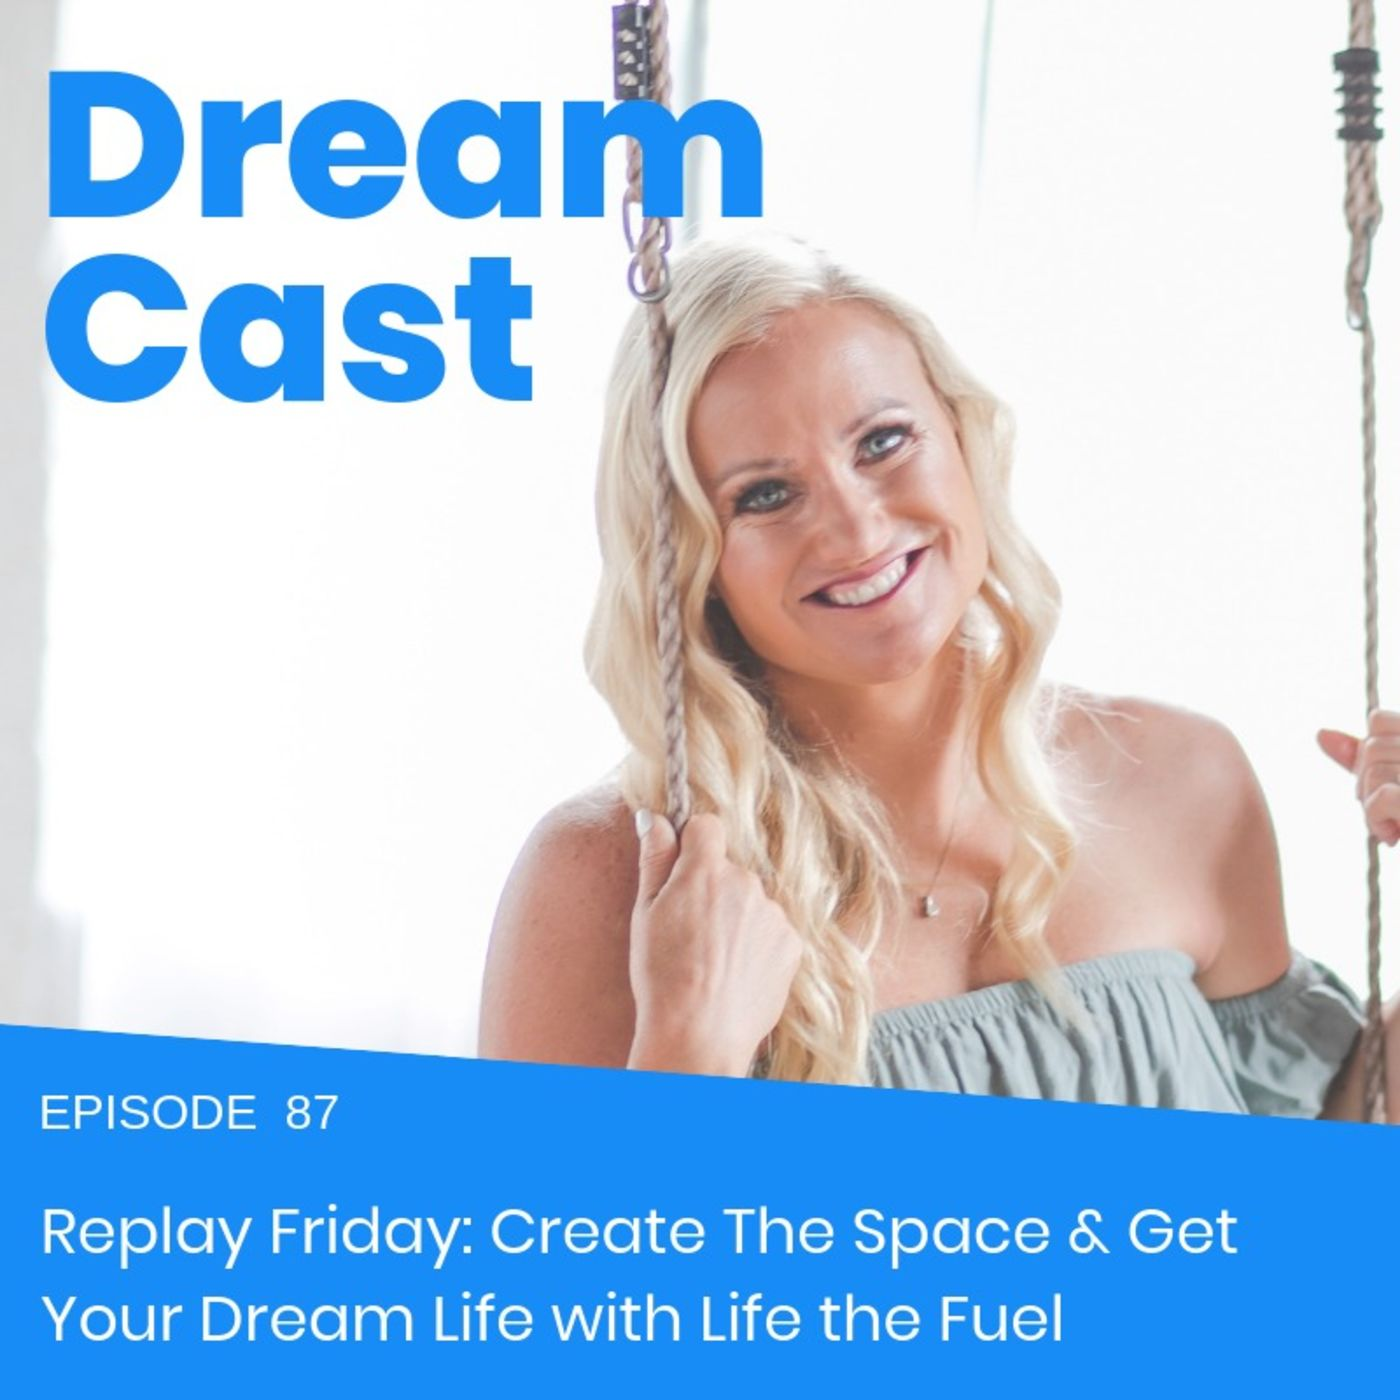 Episode 87 - Replay Friday: Create The Space & Get Your Dream Life